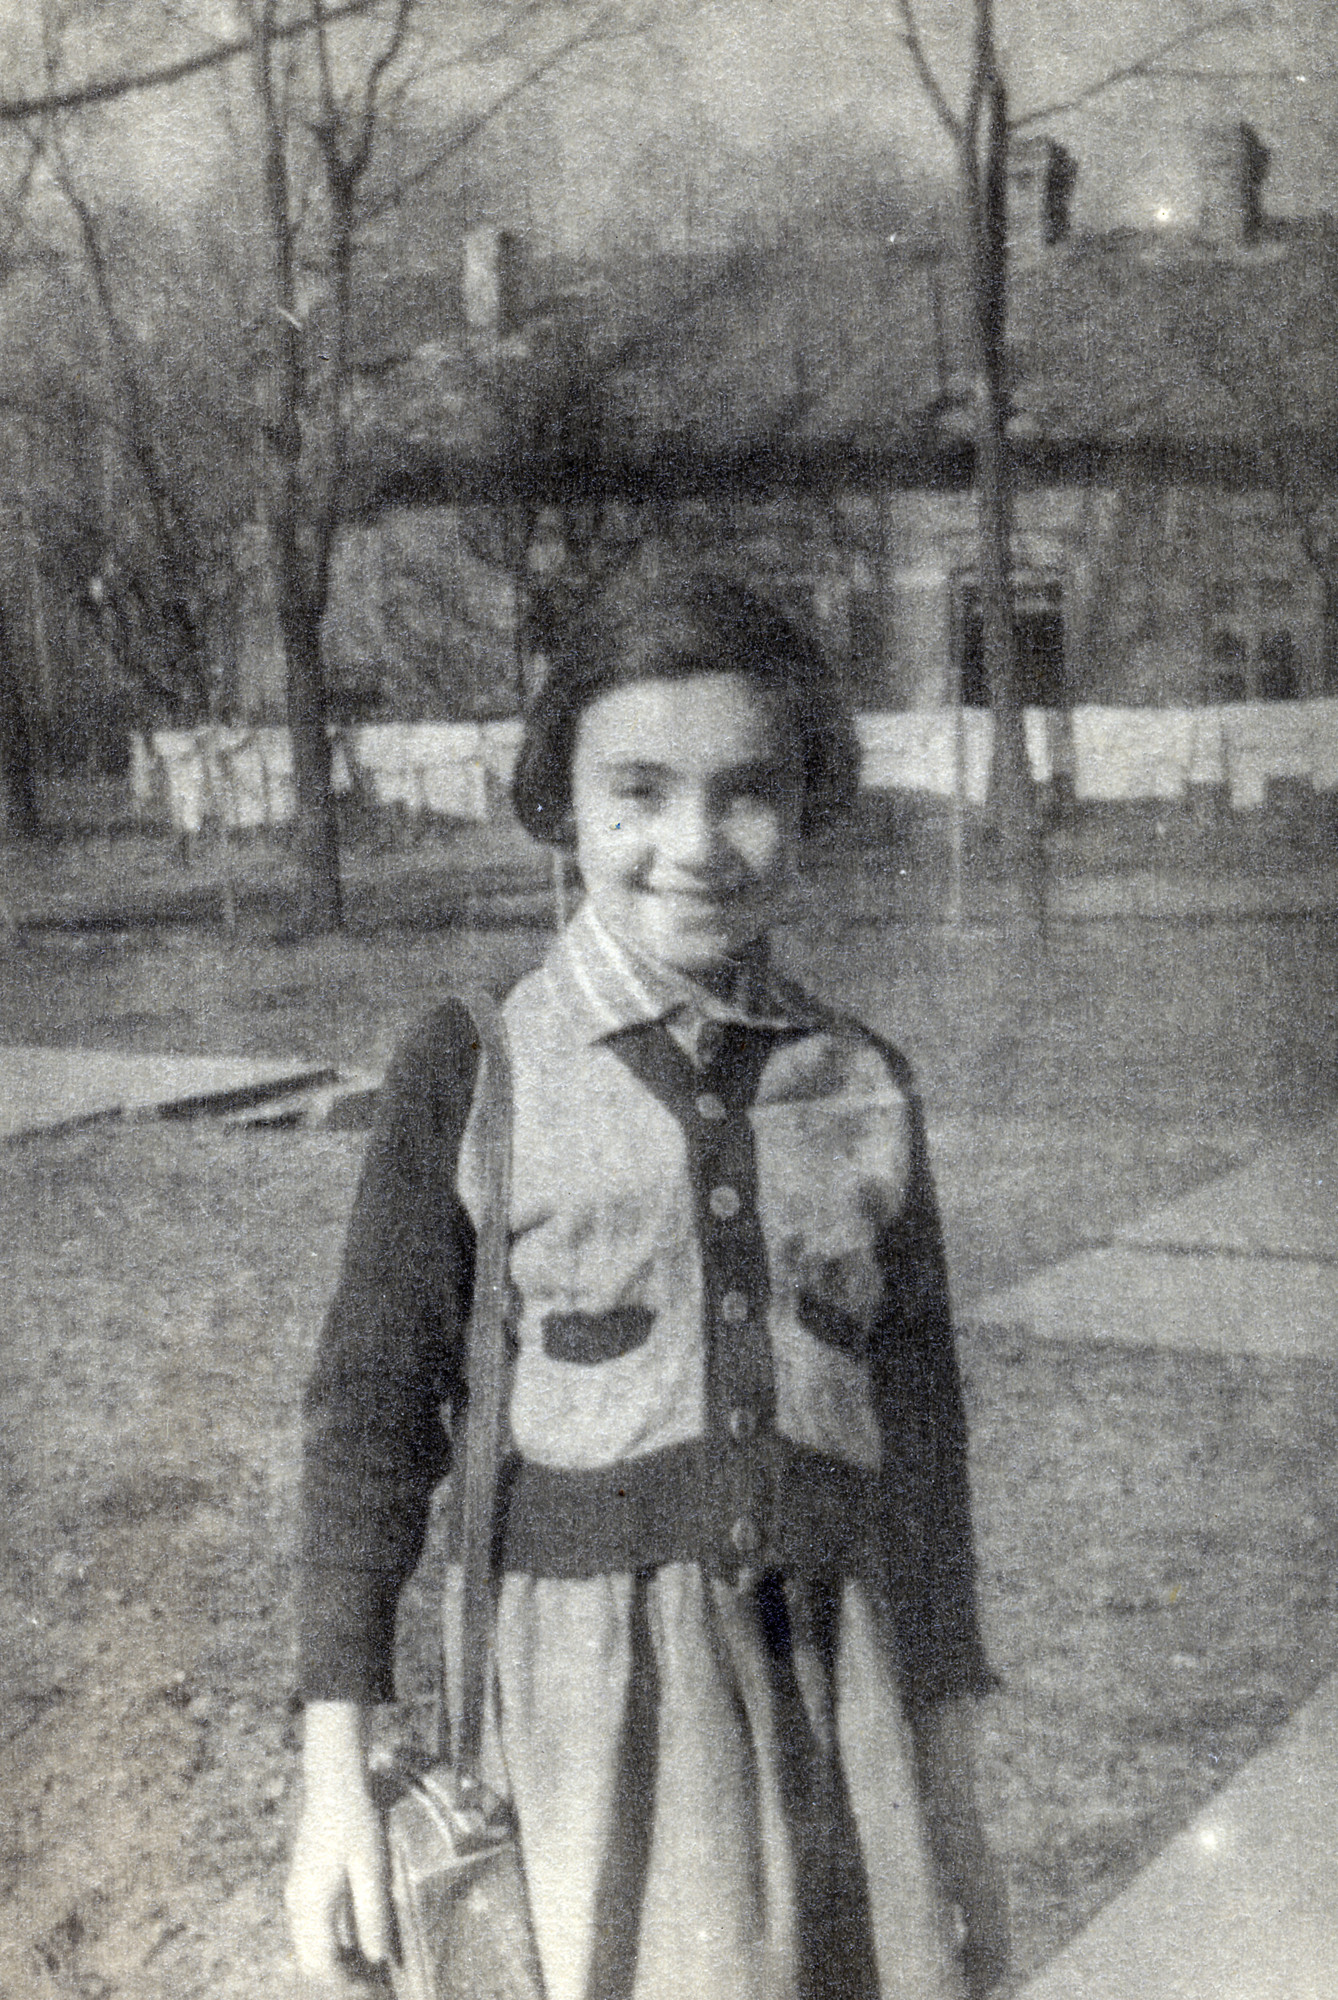 Leah Alterman stands outside an orphanage in Warsaw shortly after the end of the war.